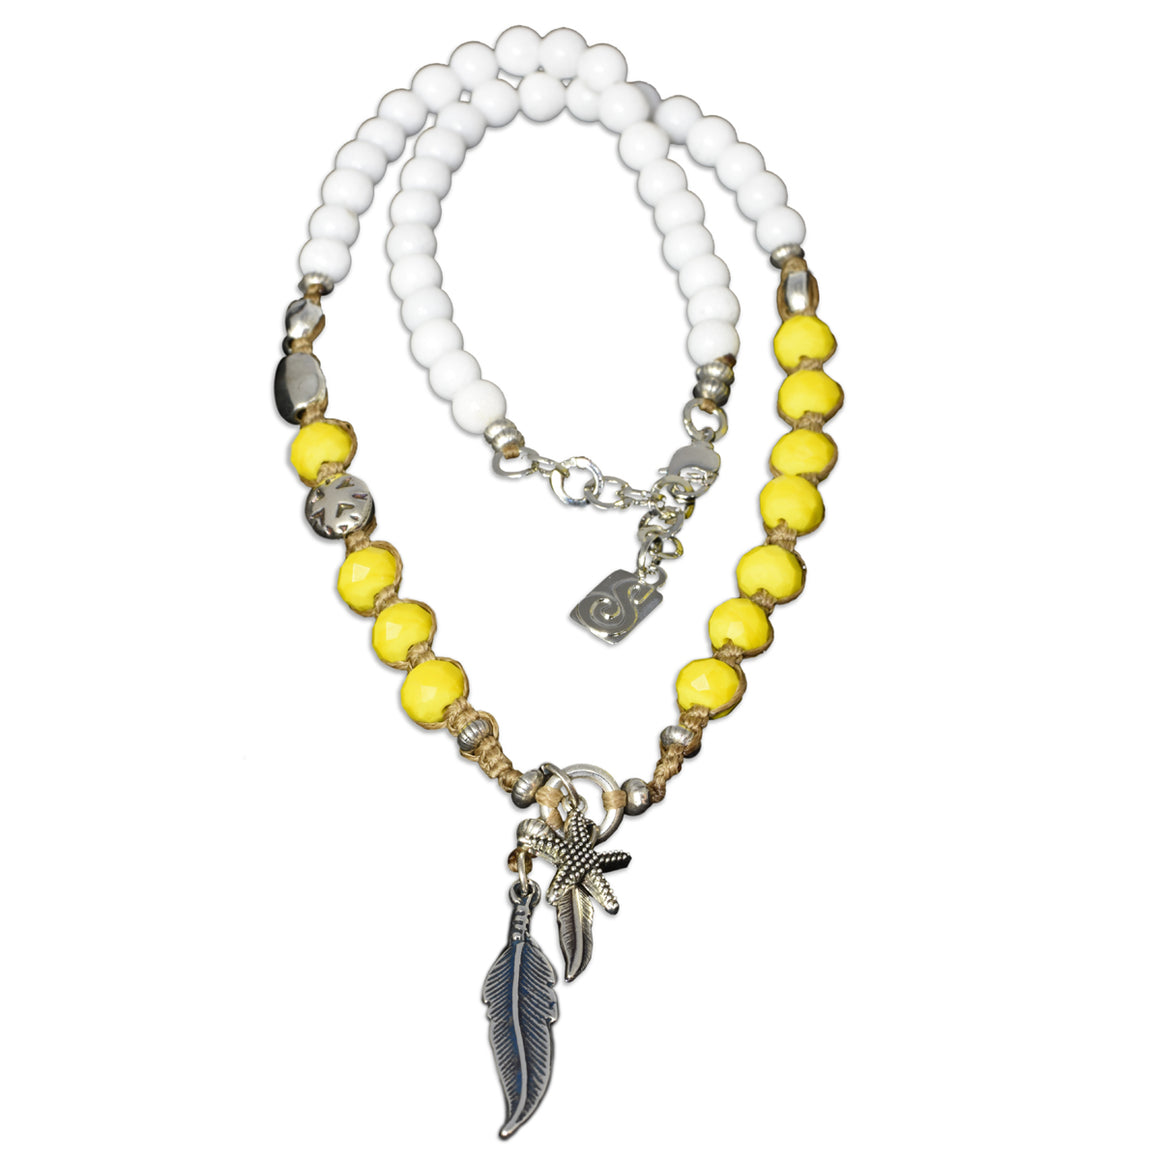 White Yellow Seychelles Necklace - SEA Smadar Eliasaf